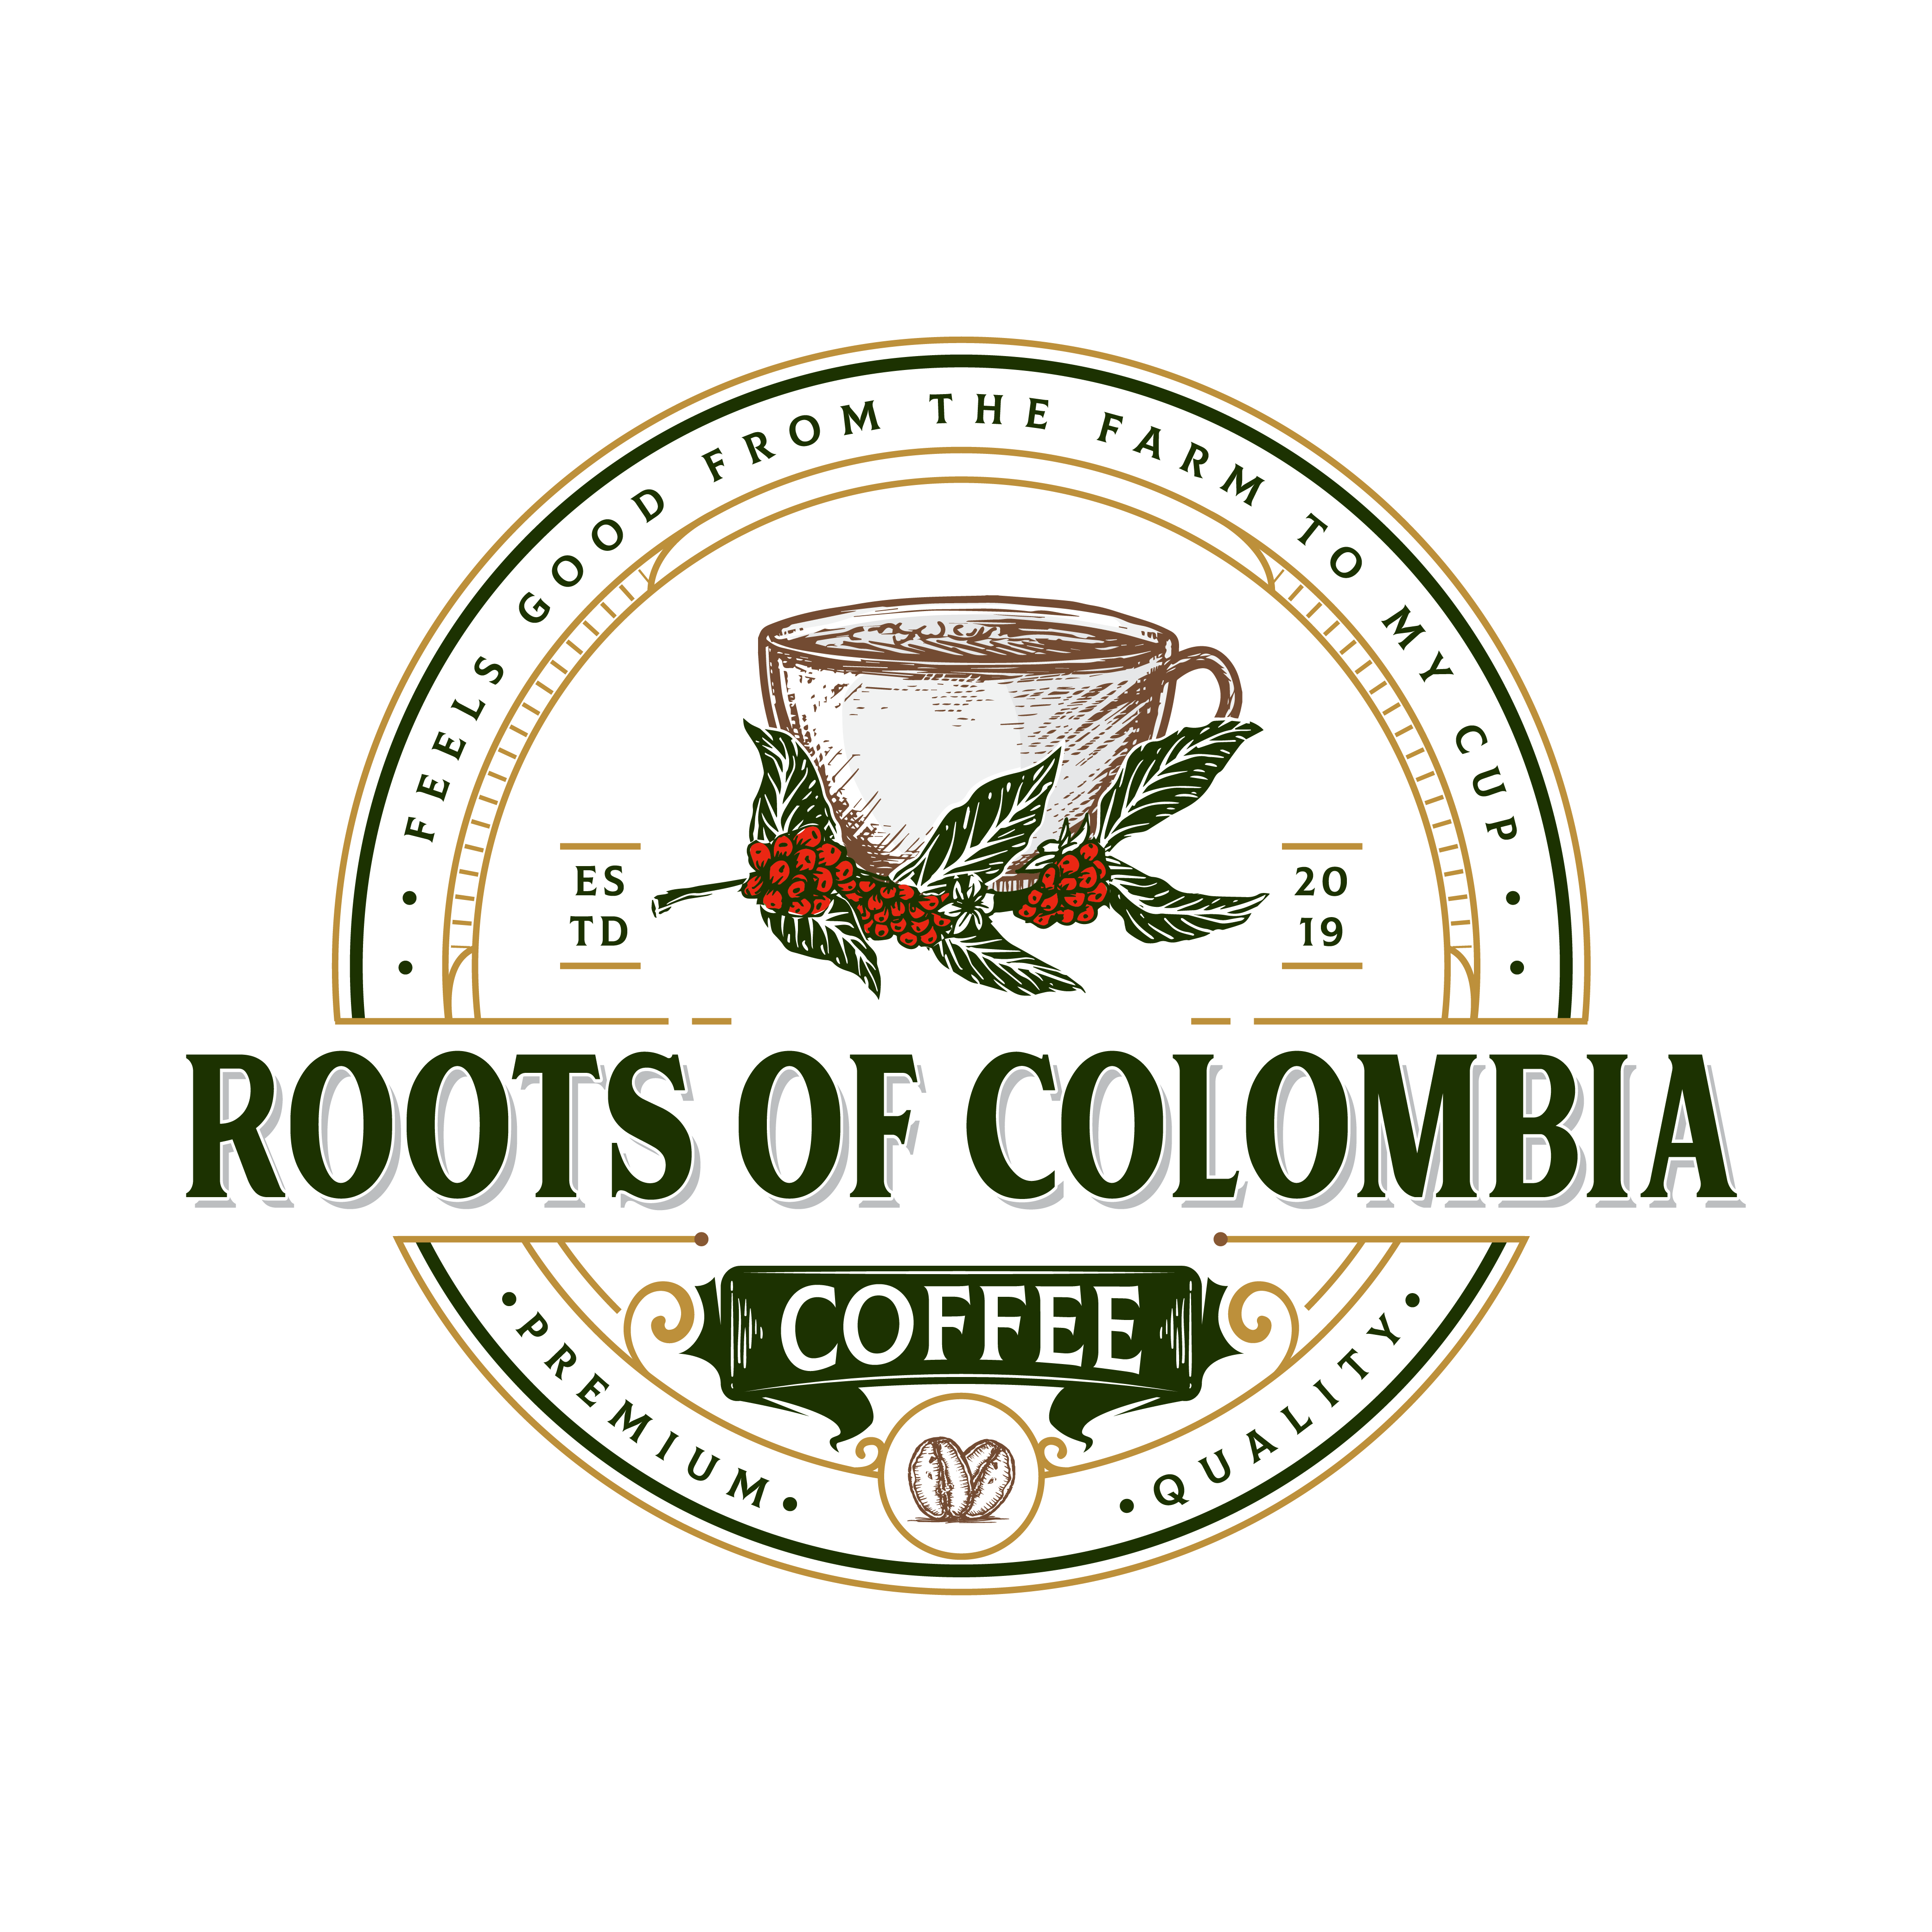 Roots of Colombia Coffee Inc.